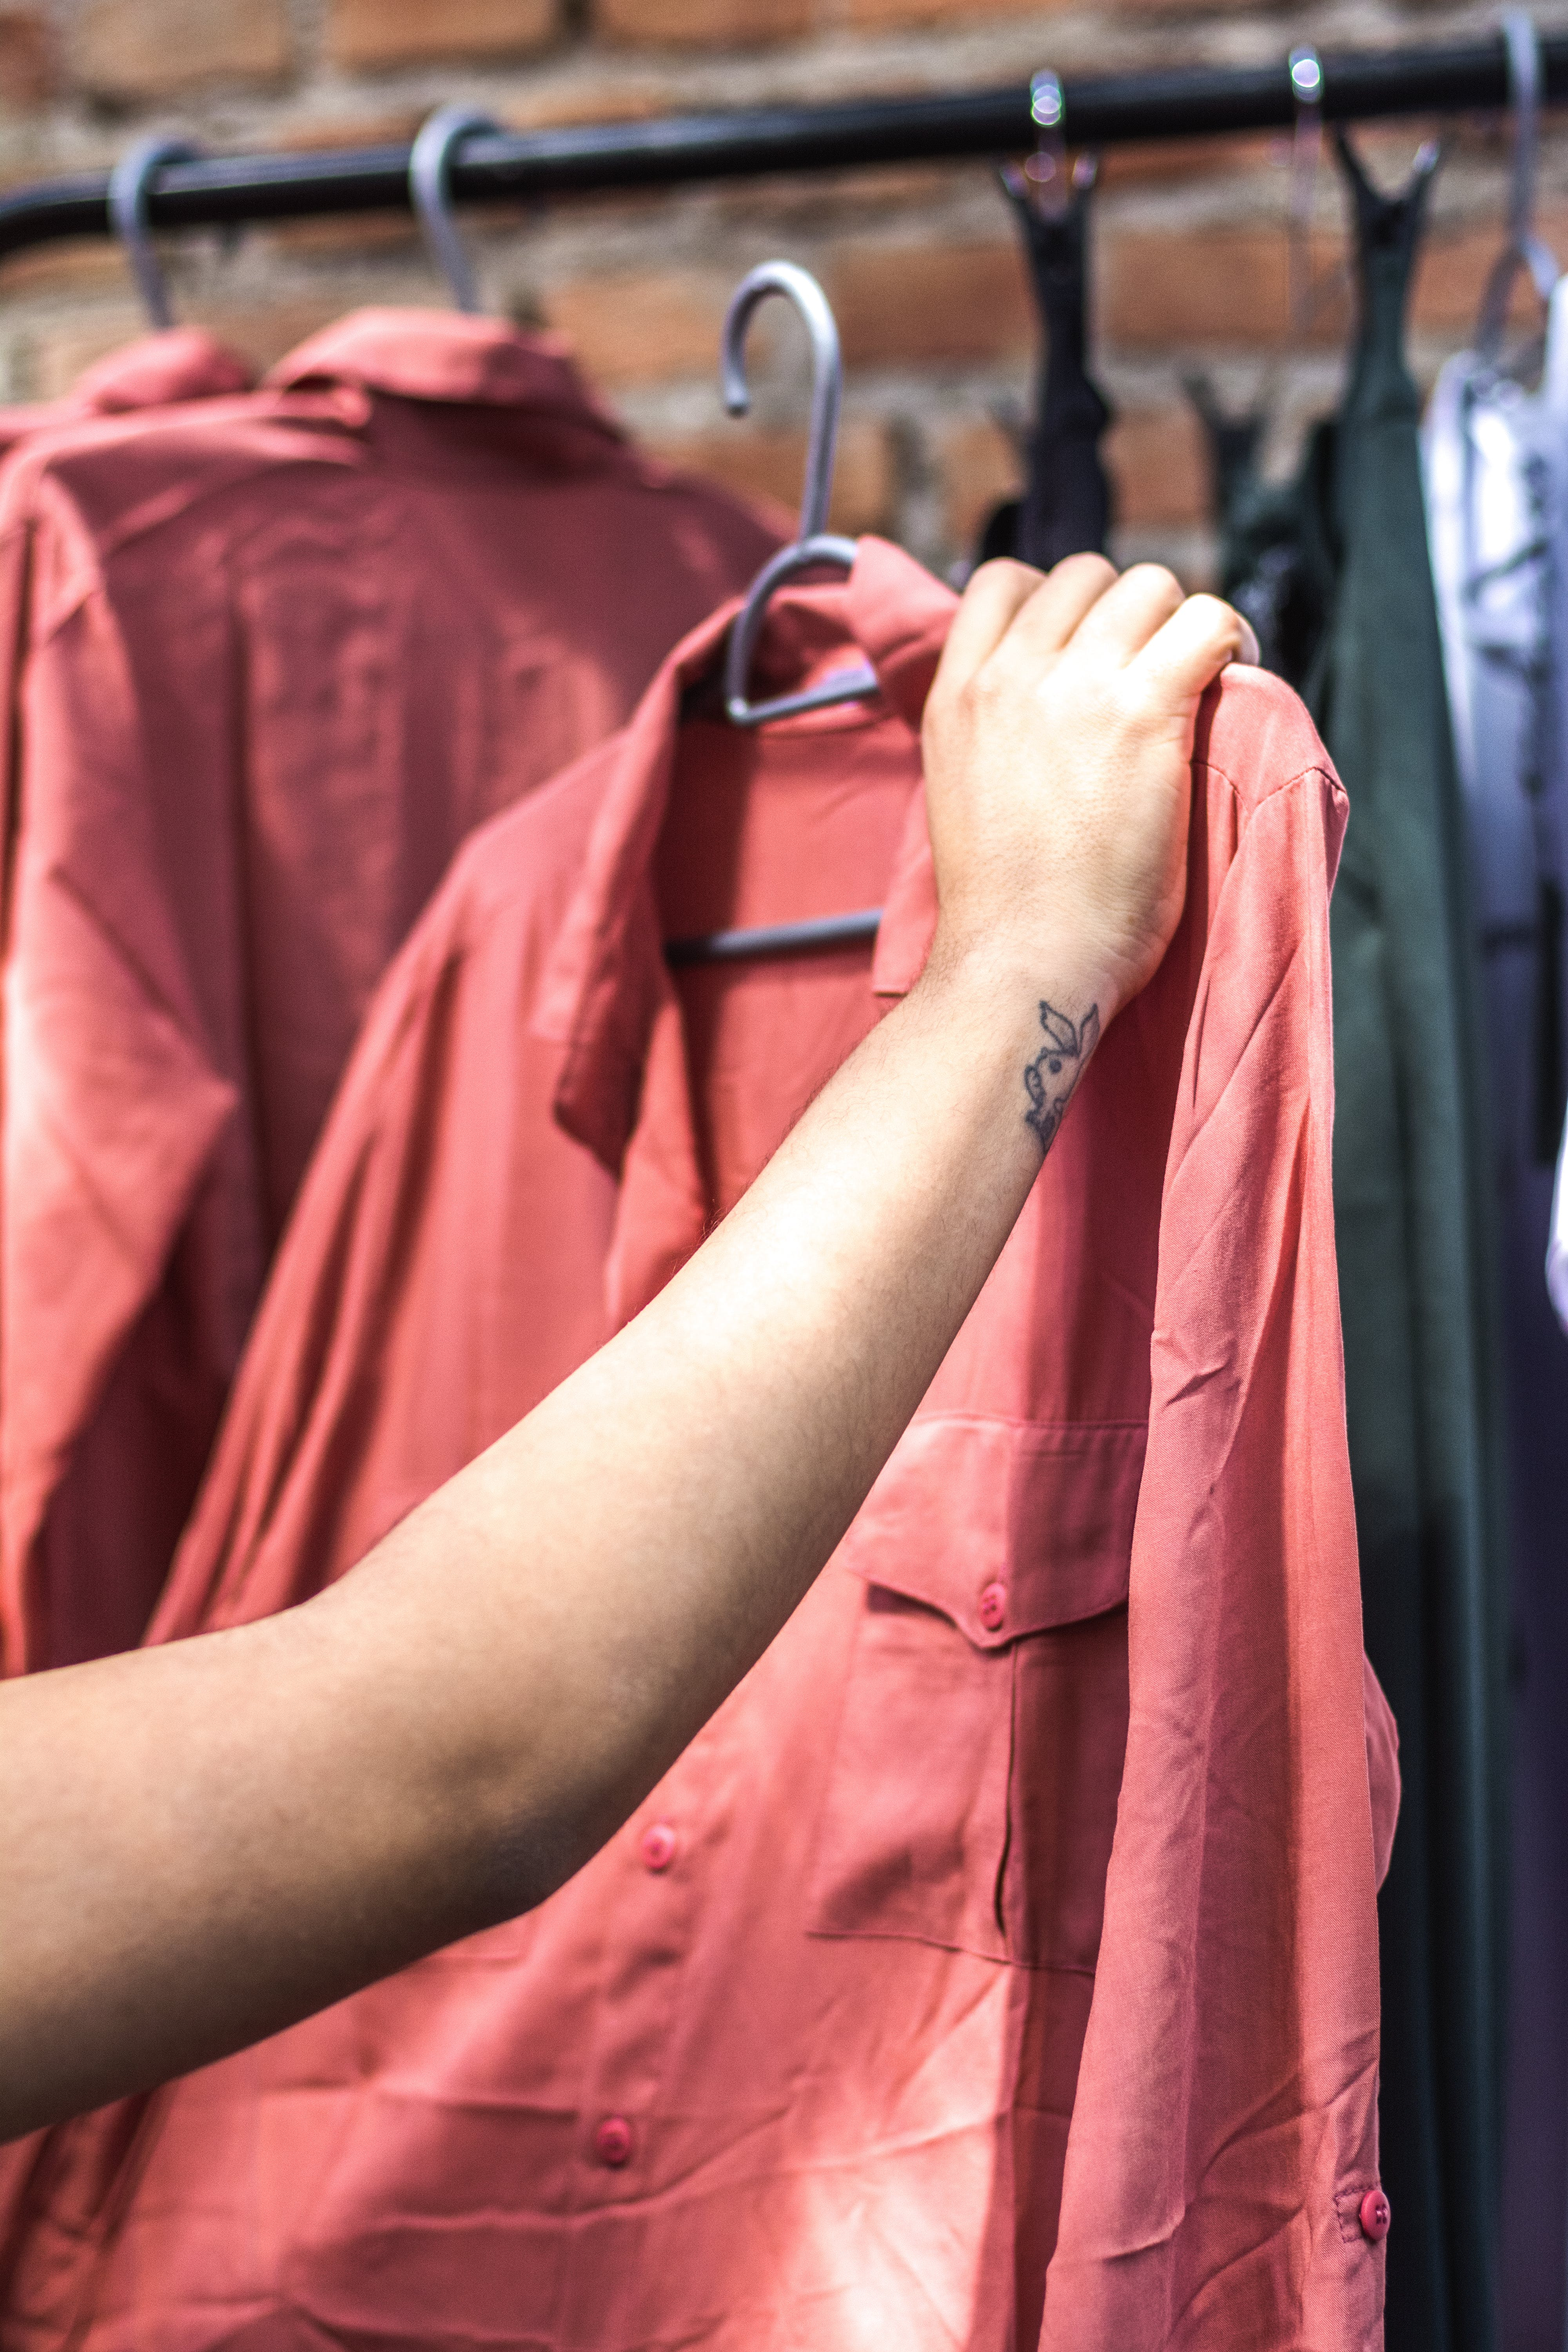 Person Holding Red Dress Shirt on Hanger